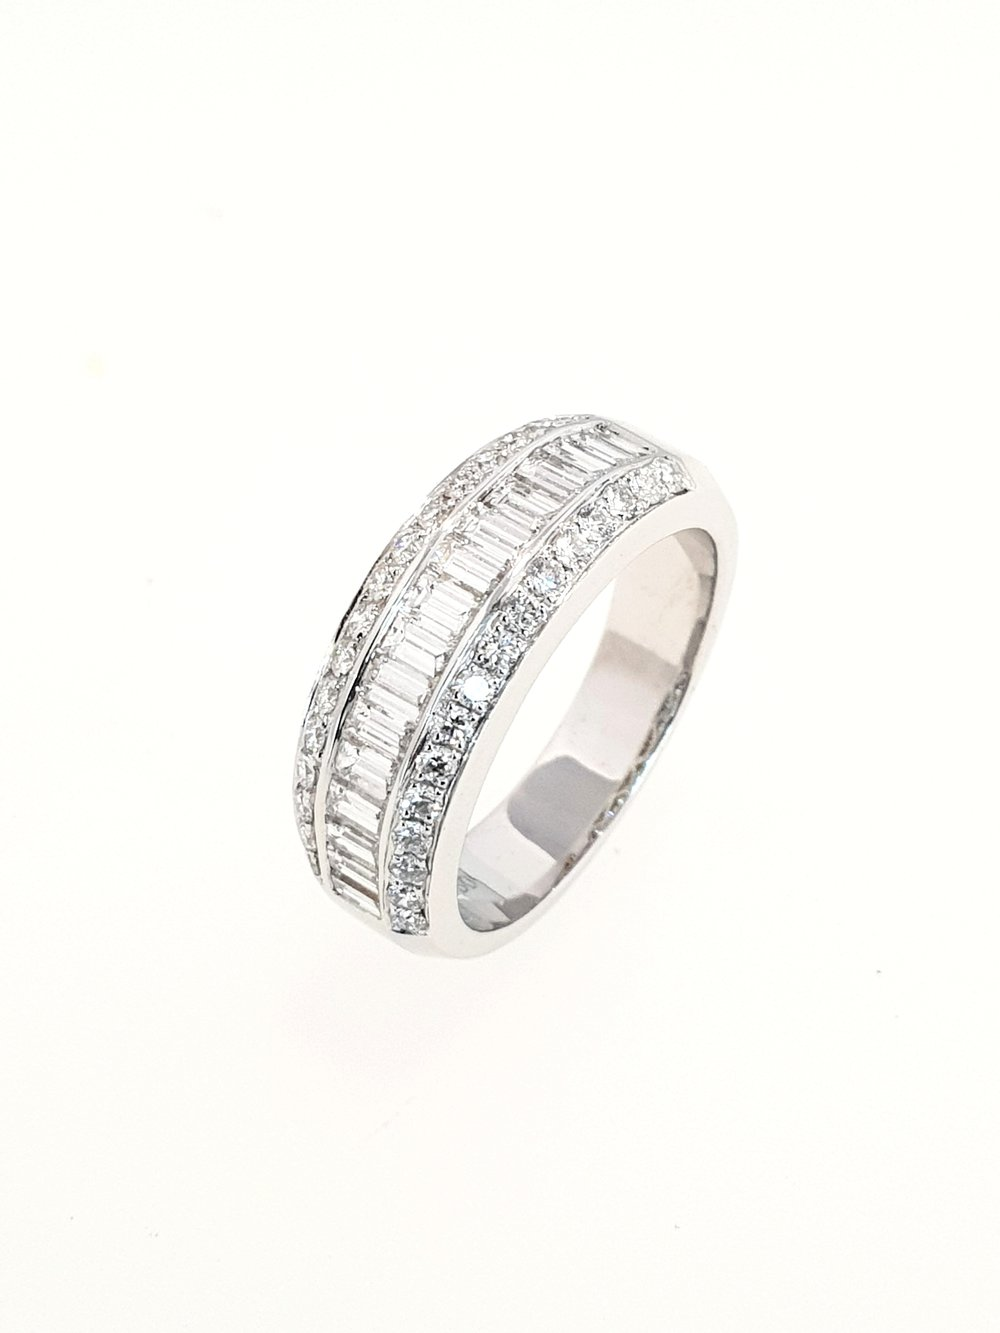 18ct White Gold 3 row Diamond Ring  1.13ct, G, SI1  Stock Code: N8924  £3500